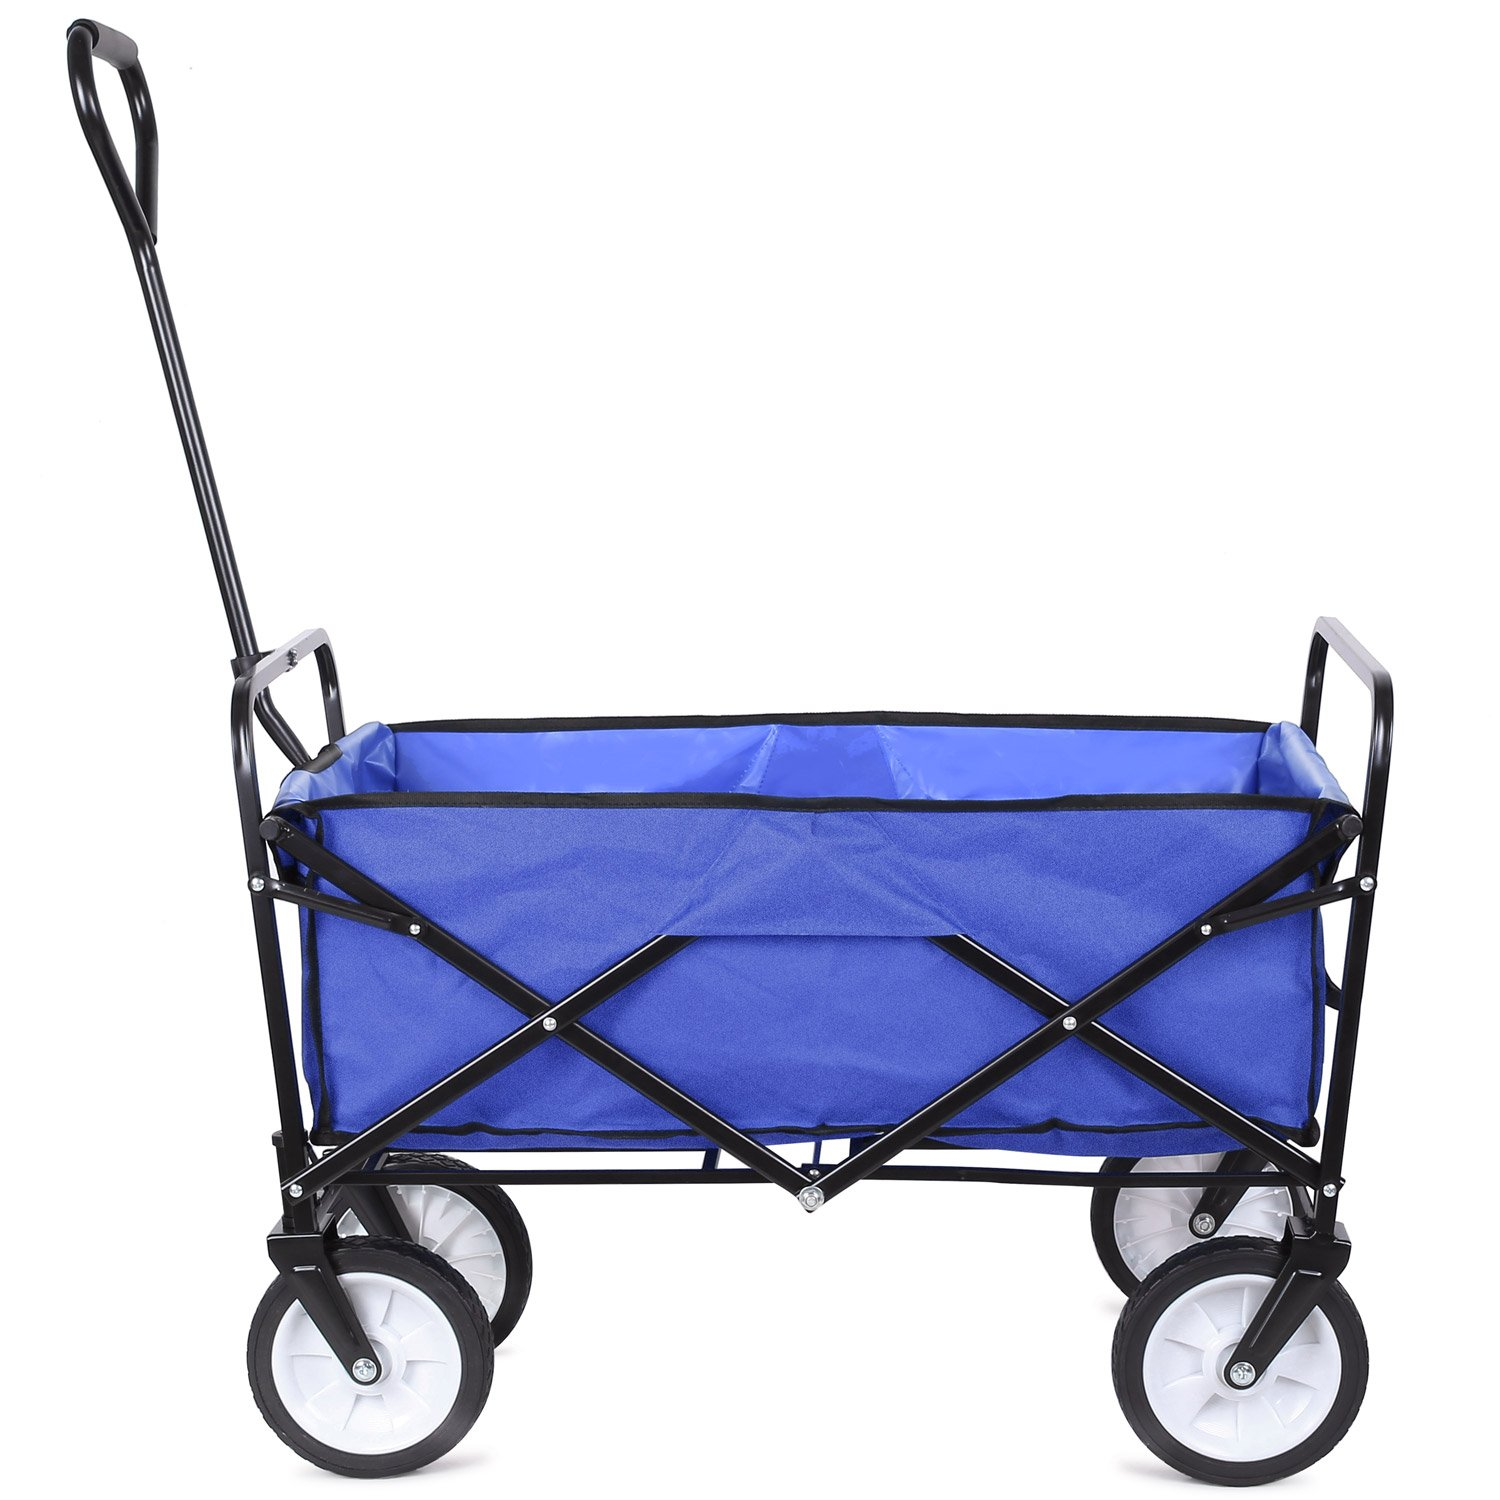 FIXKIT Collapsible Outdoor Utility Wagon, Folding Sturdy Garden Shopping Cart for Beach with All-Terrain Wheels, Blue